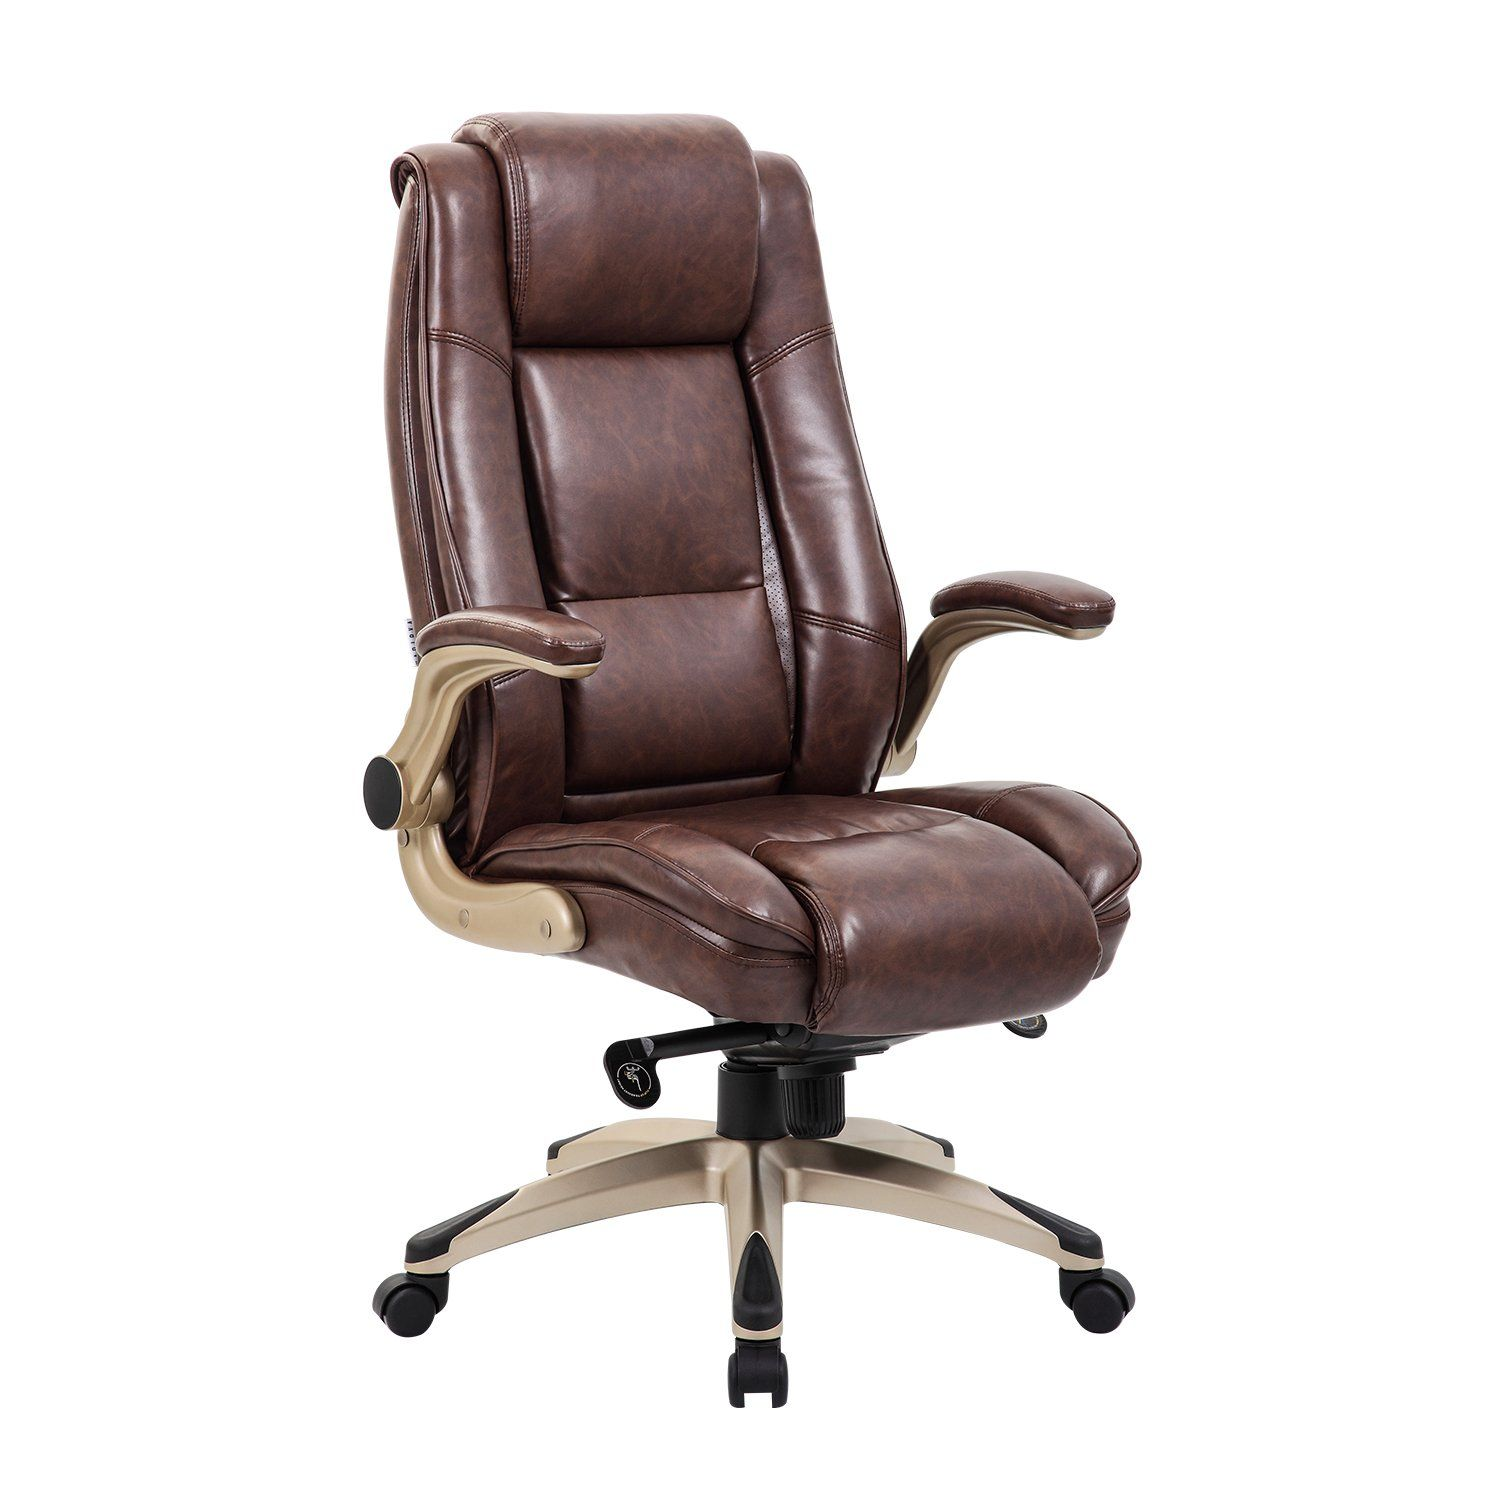 Lch High Back Leather Office Chair Executive Computer Desk With Adjule Angle Recline Locking System And Flip Up Arms Thick Padding For Comfort